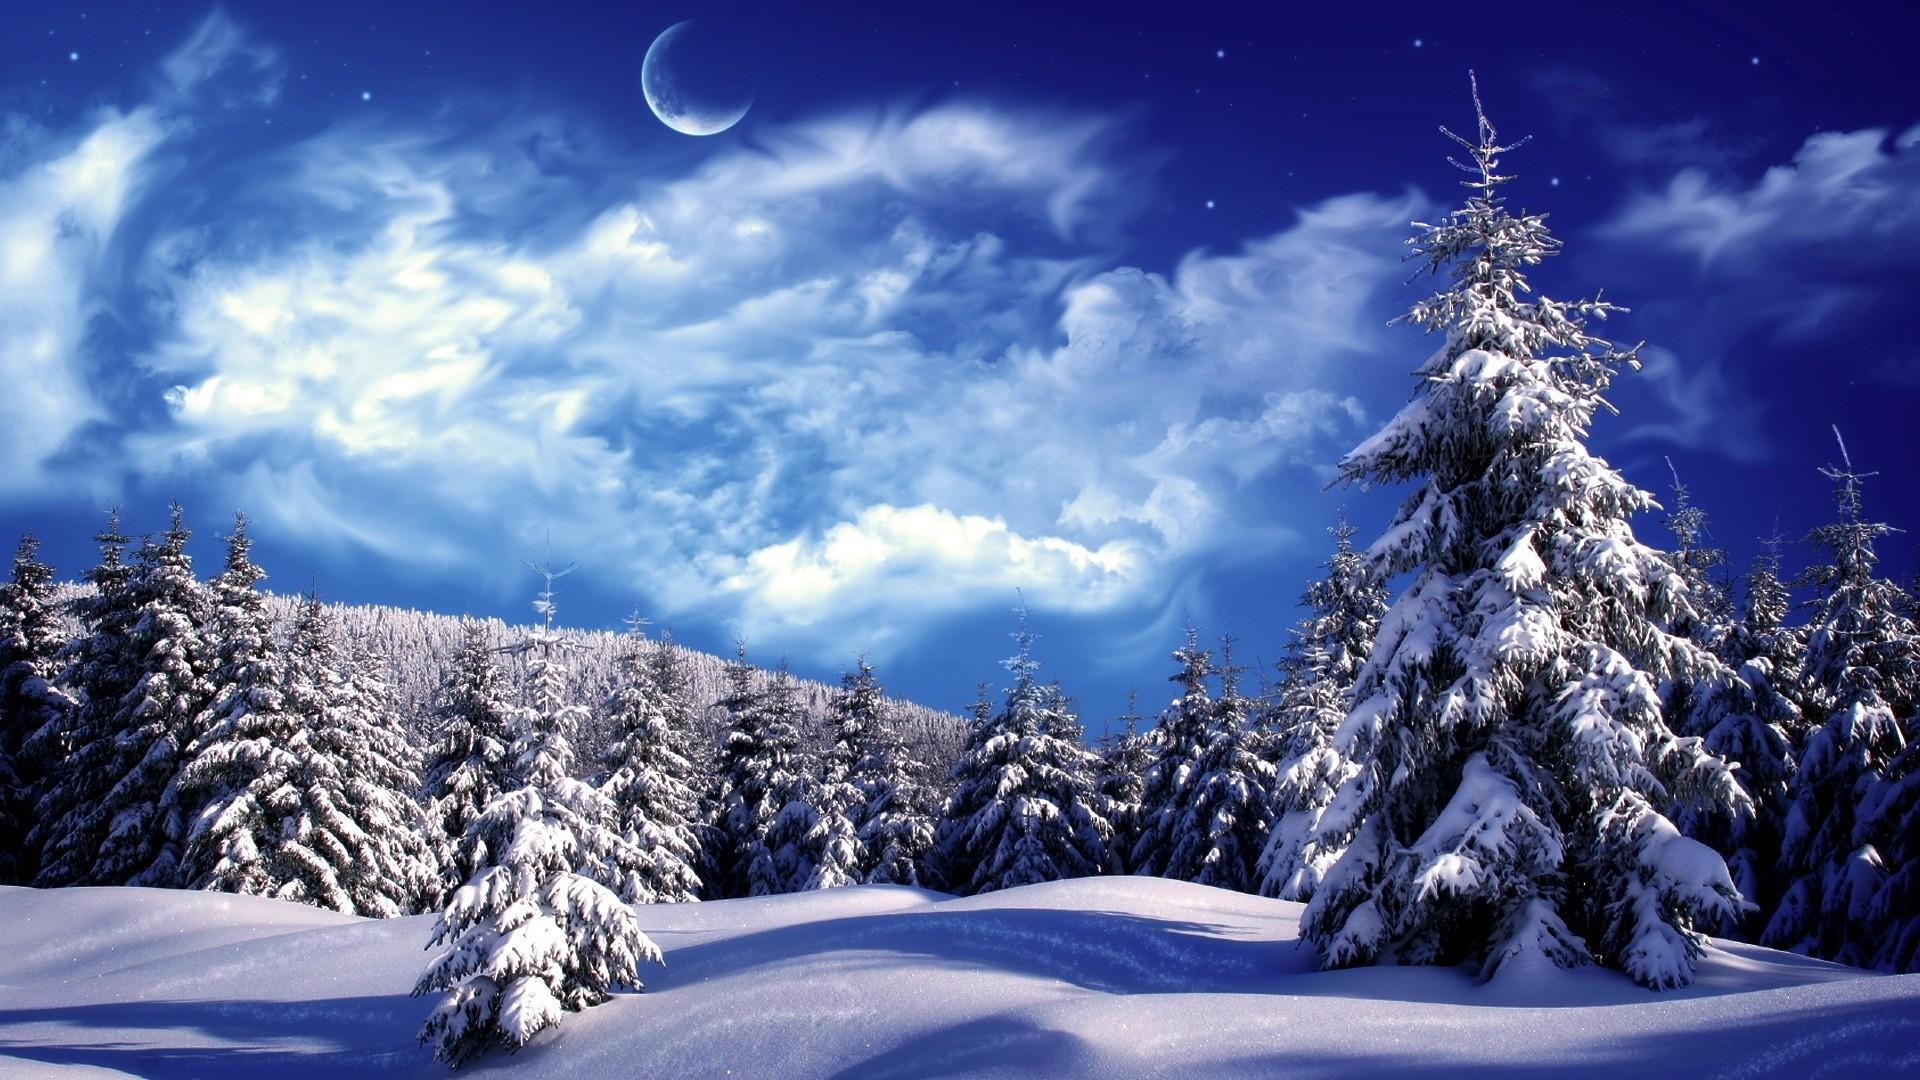 Res: 1920x1080, 1280x1024 Winter Snow Scenes Wallpapers Group (92+)